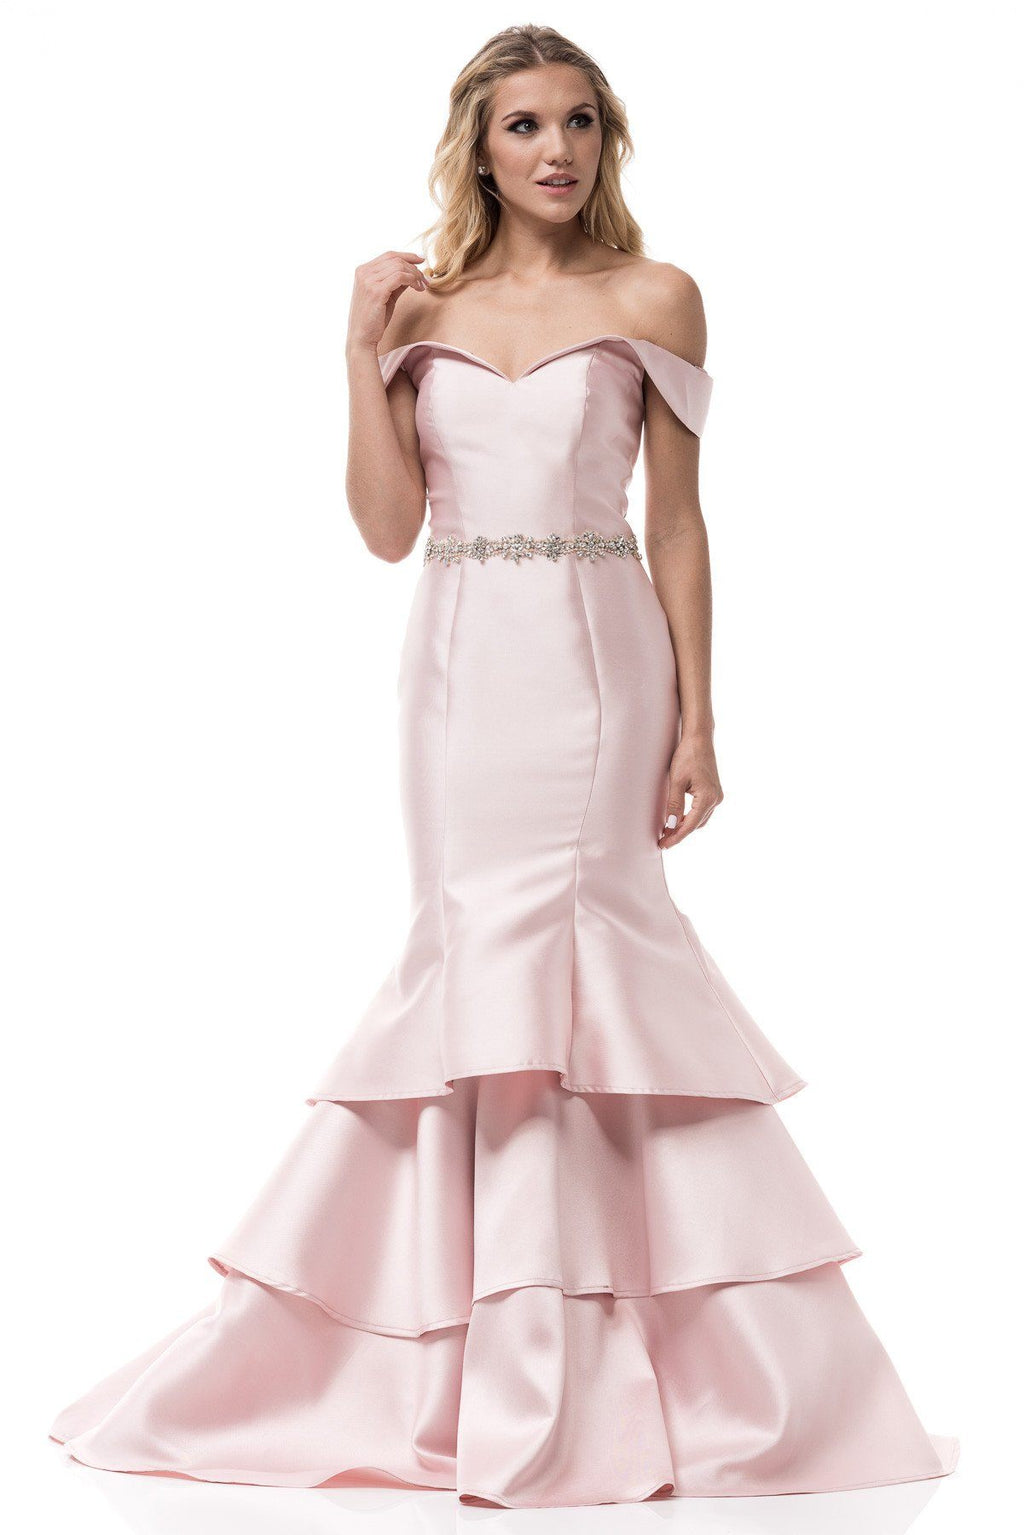 Satin mermaid bridesmaid dress BC-S#GA3224 - Simply Fab Dress